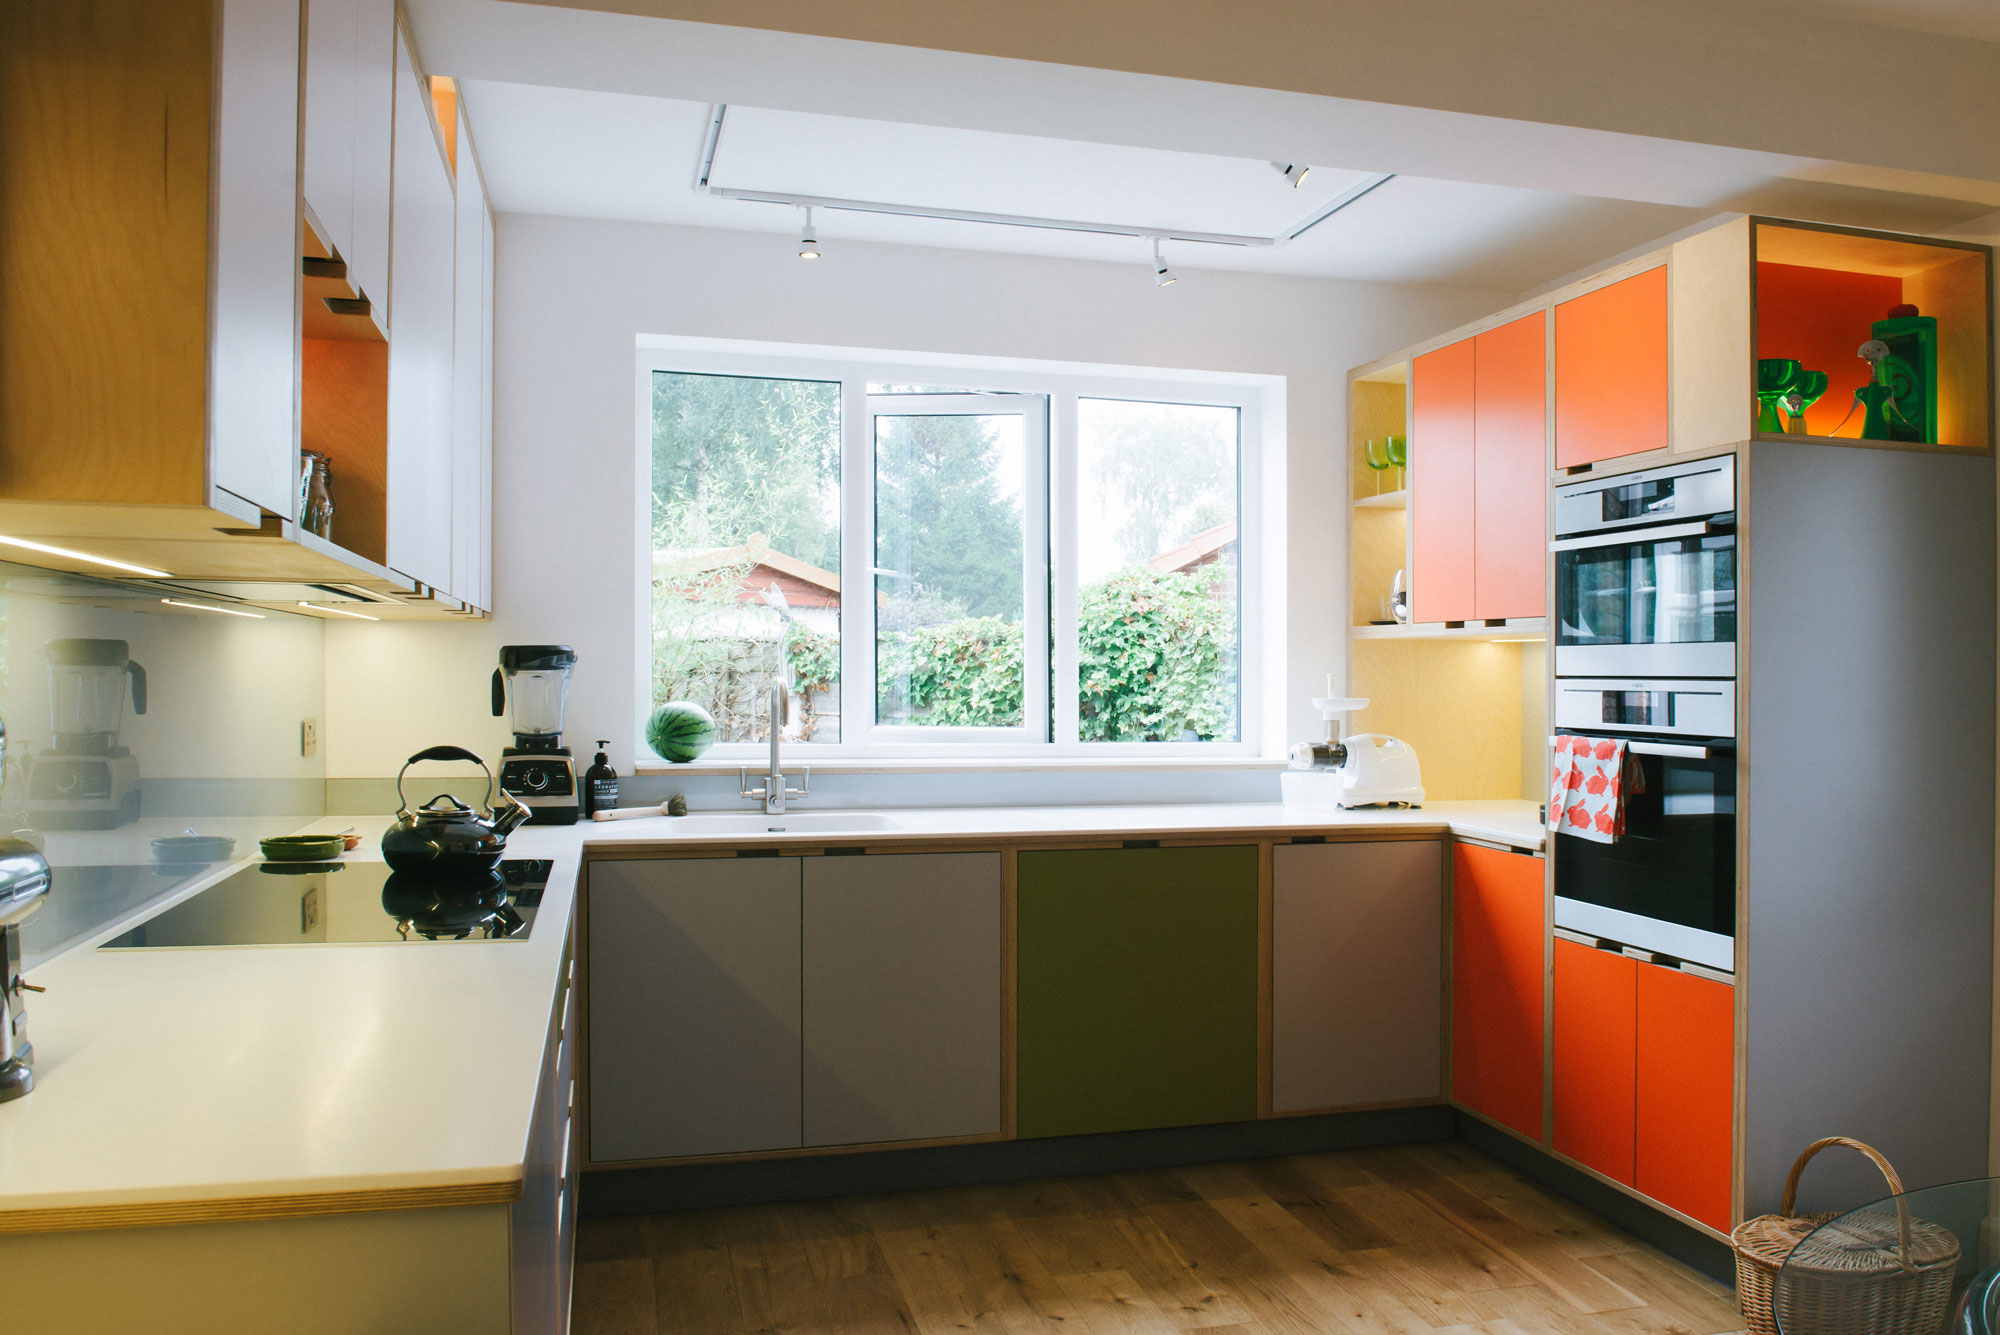 Orange and green kitchen